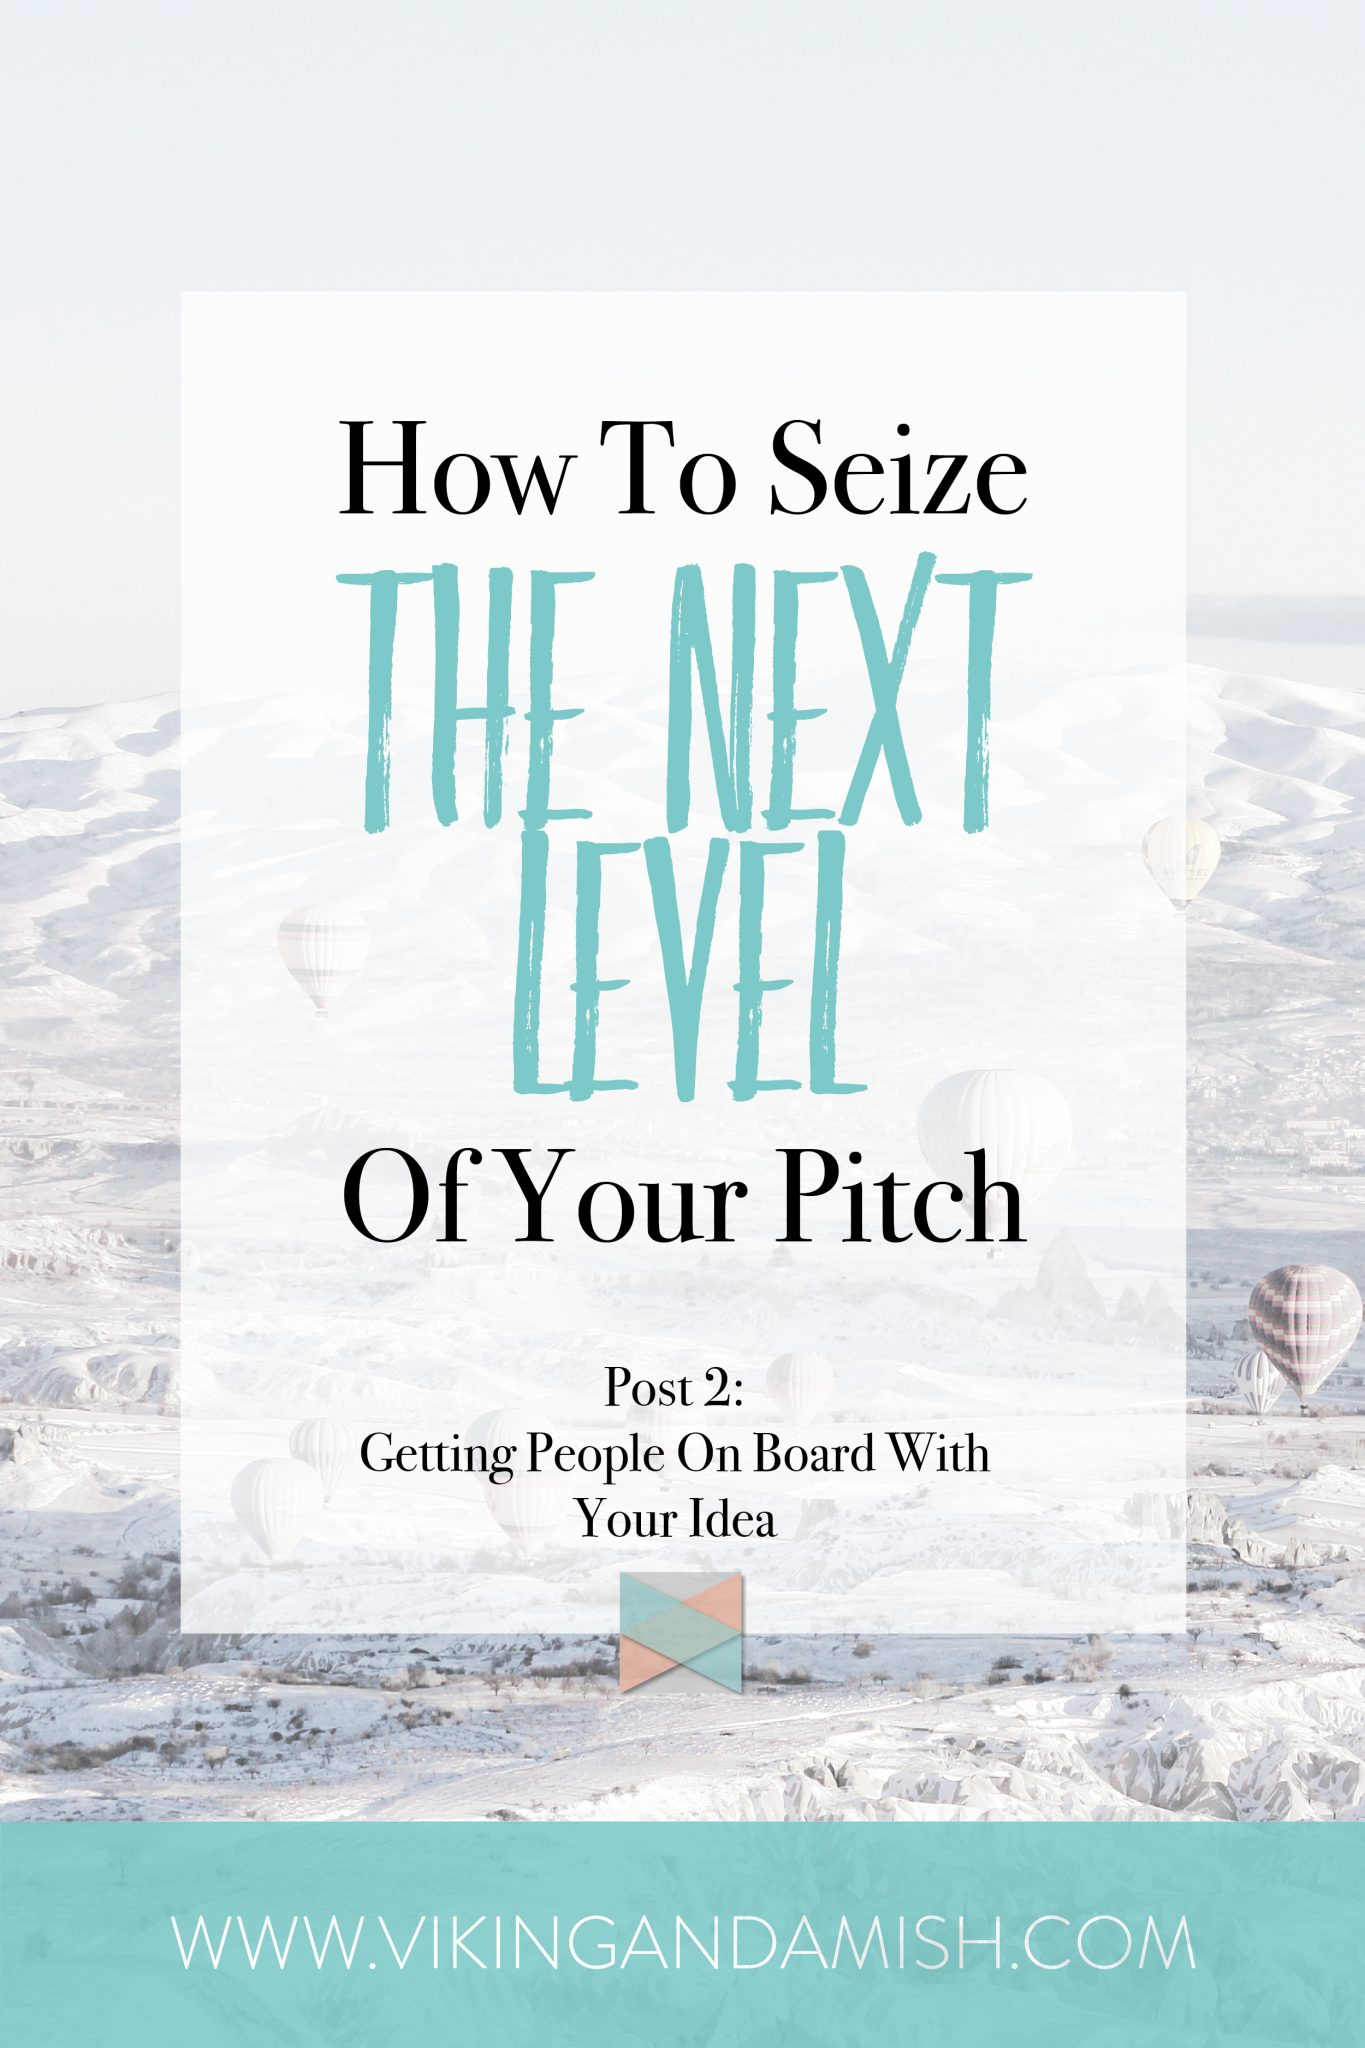 How To Seize The Next Level Of Your Pitch - Learn how to get people on board with your idea | www.vikingandamish.com